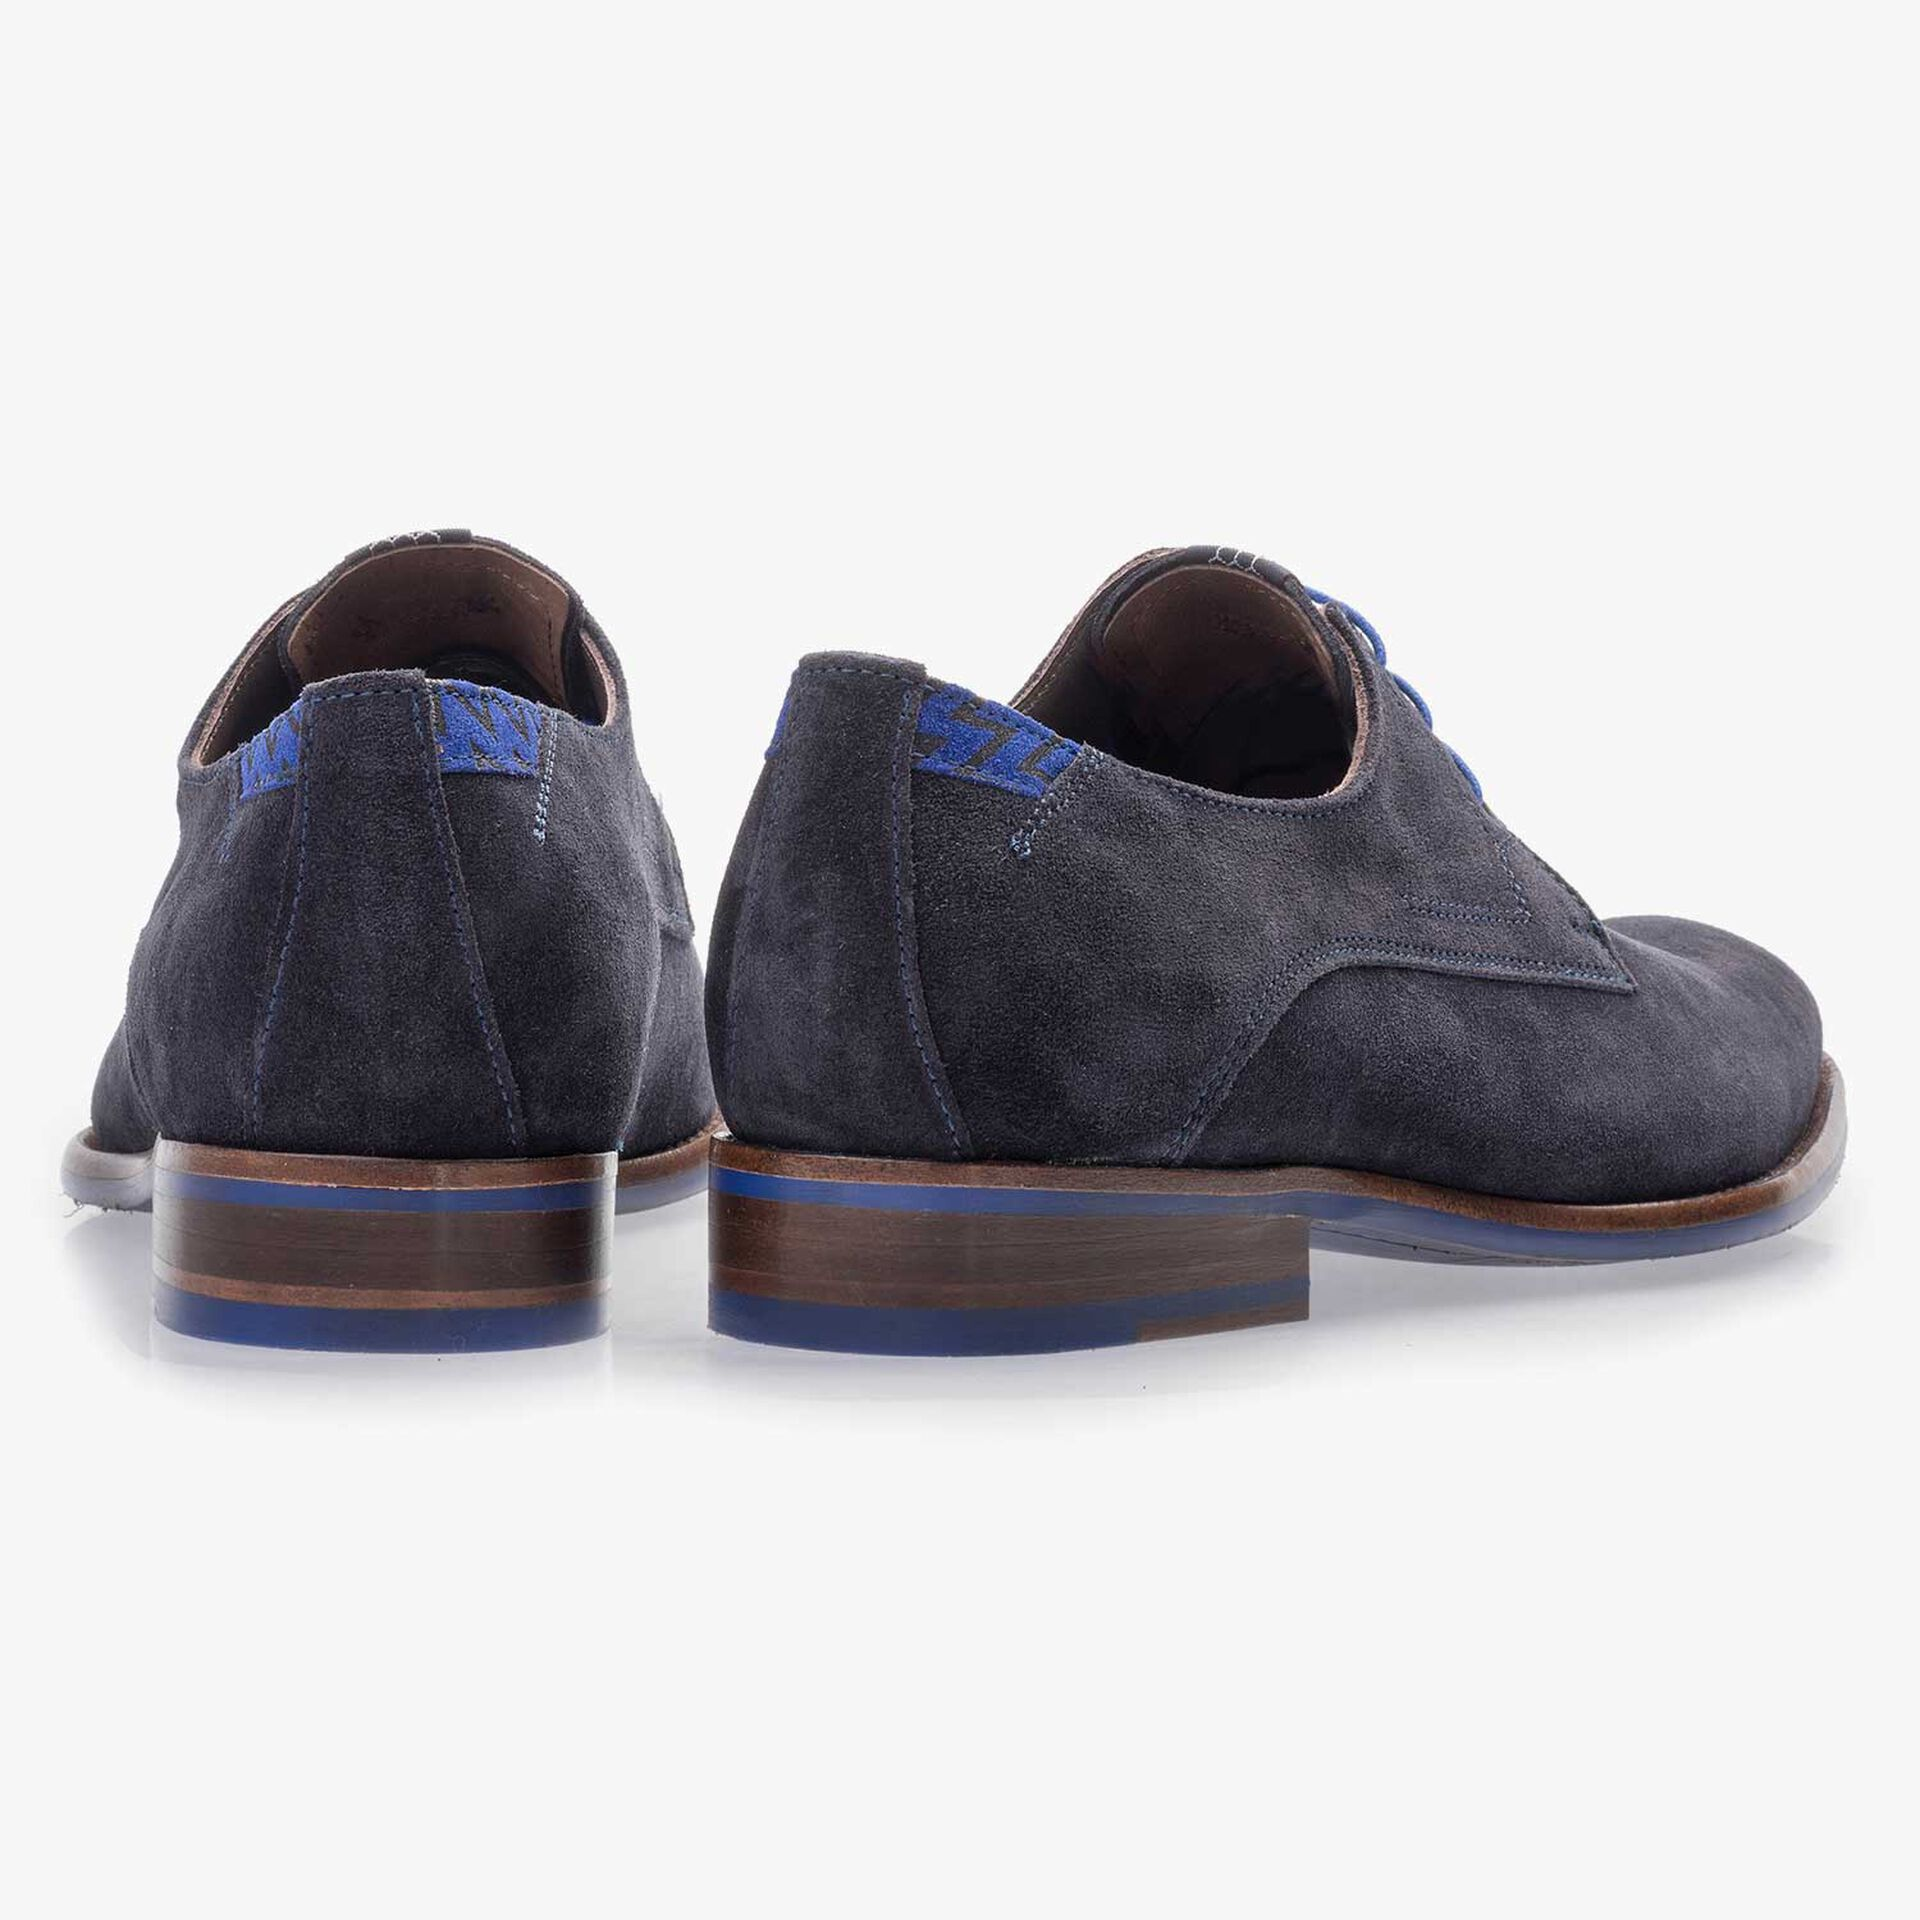 Dark blue suede leather lace shoe